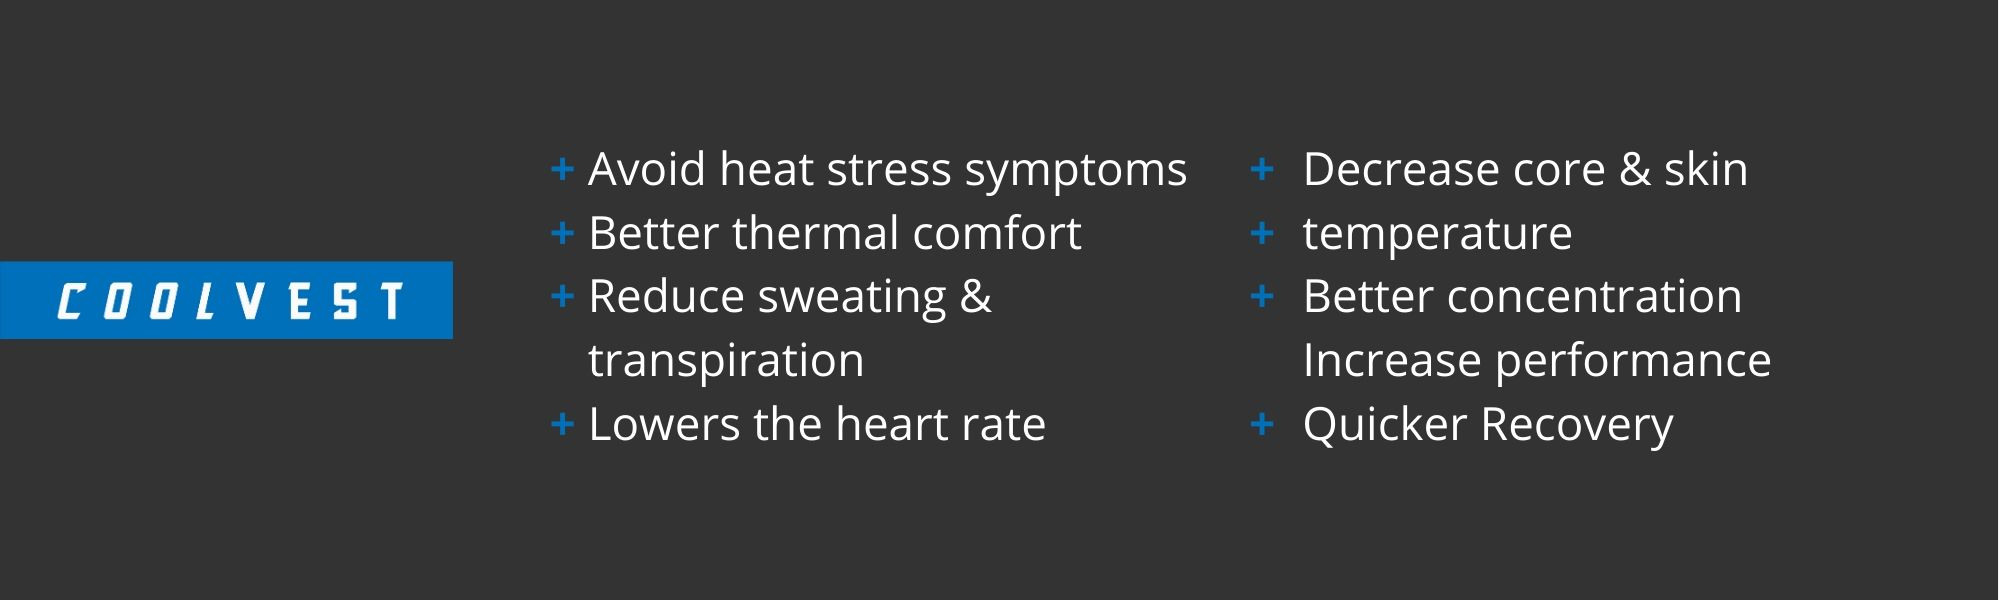 CoolVest | How heat humidity can affect your performance and how new tech can help 2